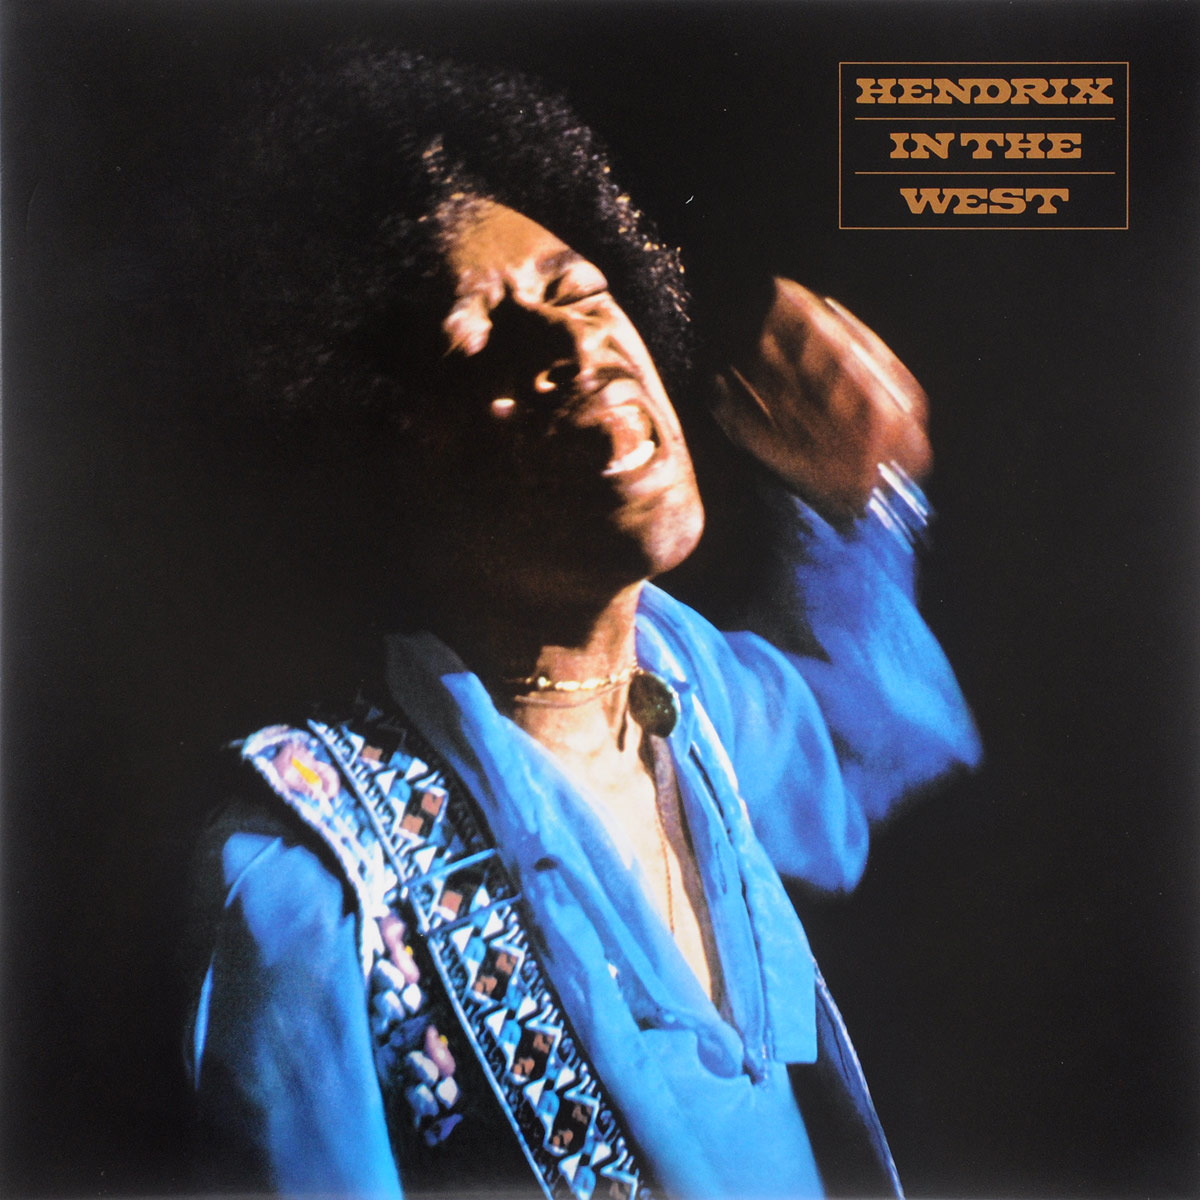 Джими Хендрикс Jimi Hendrix. Hendrix In The West (2 LP) плектр dunlop jimi hendrix 12 medium